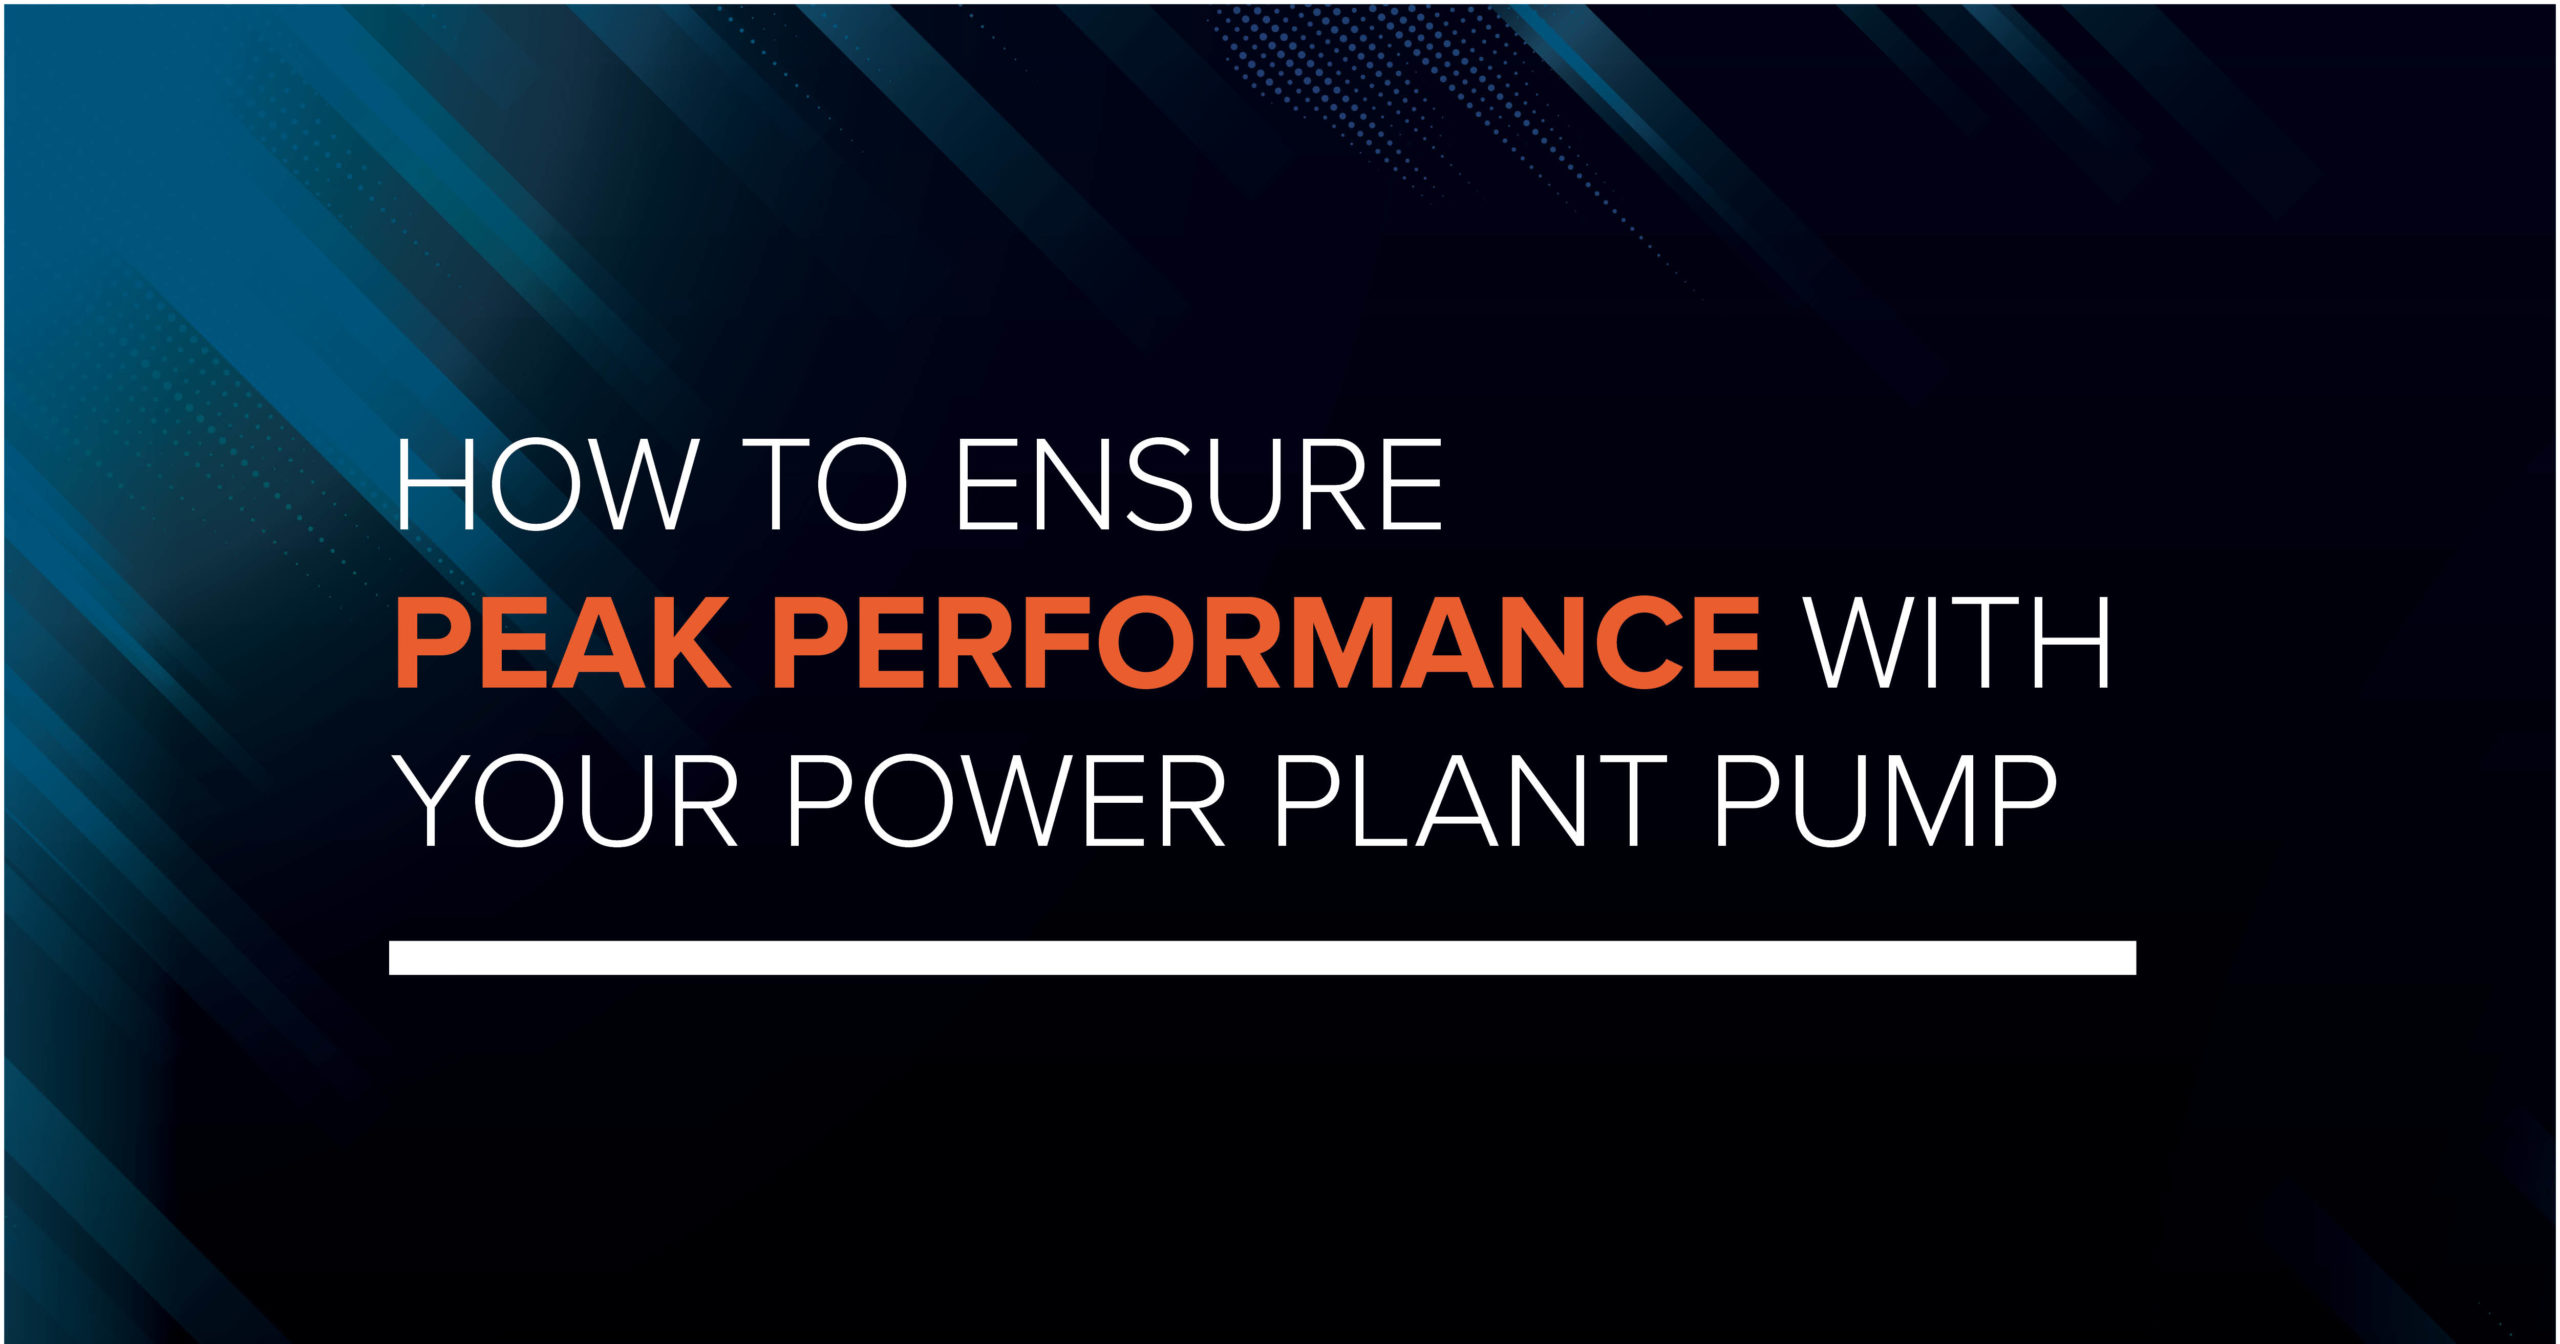 How to Ensure Peak Performance with Your Power Plant Pump